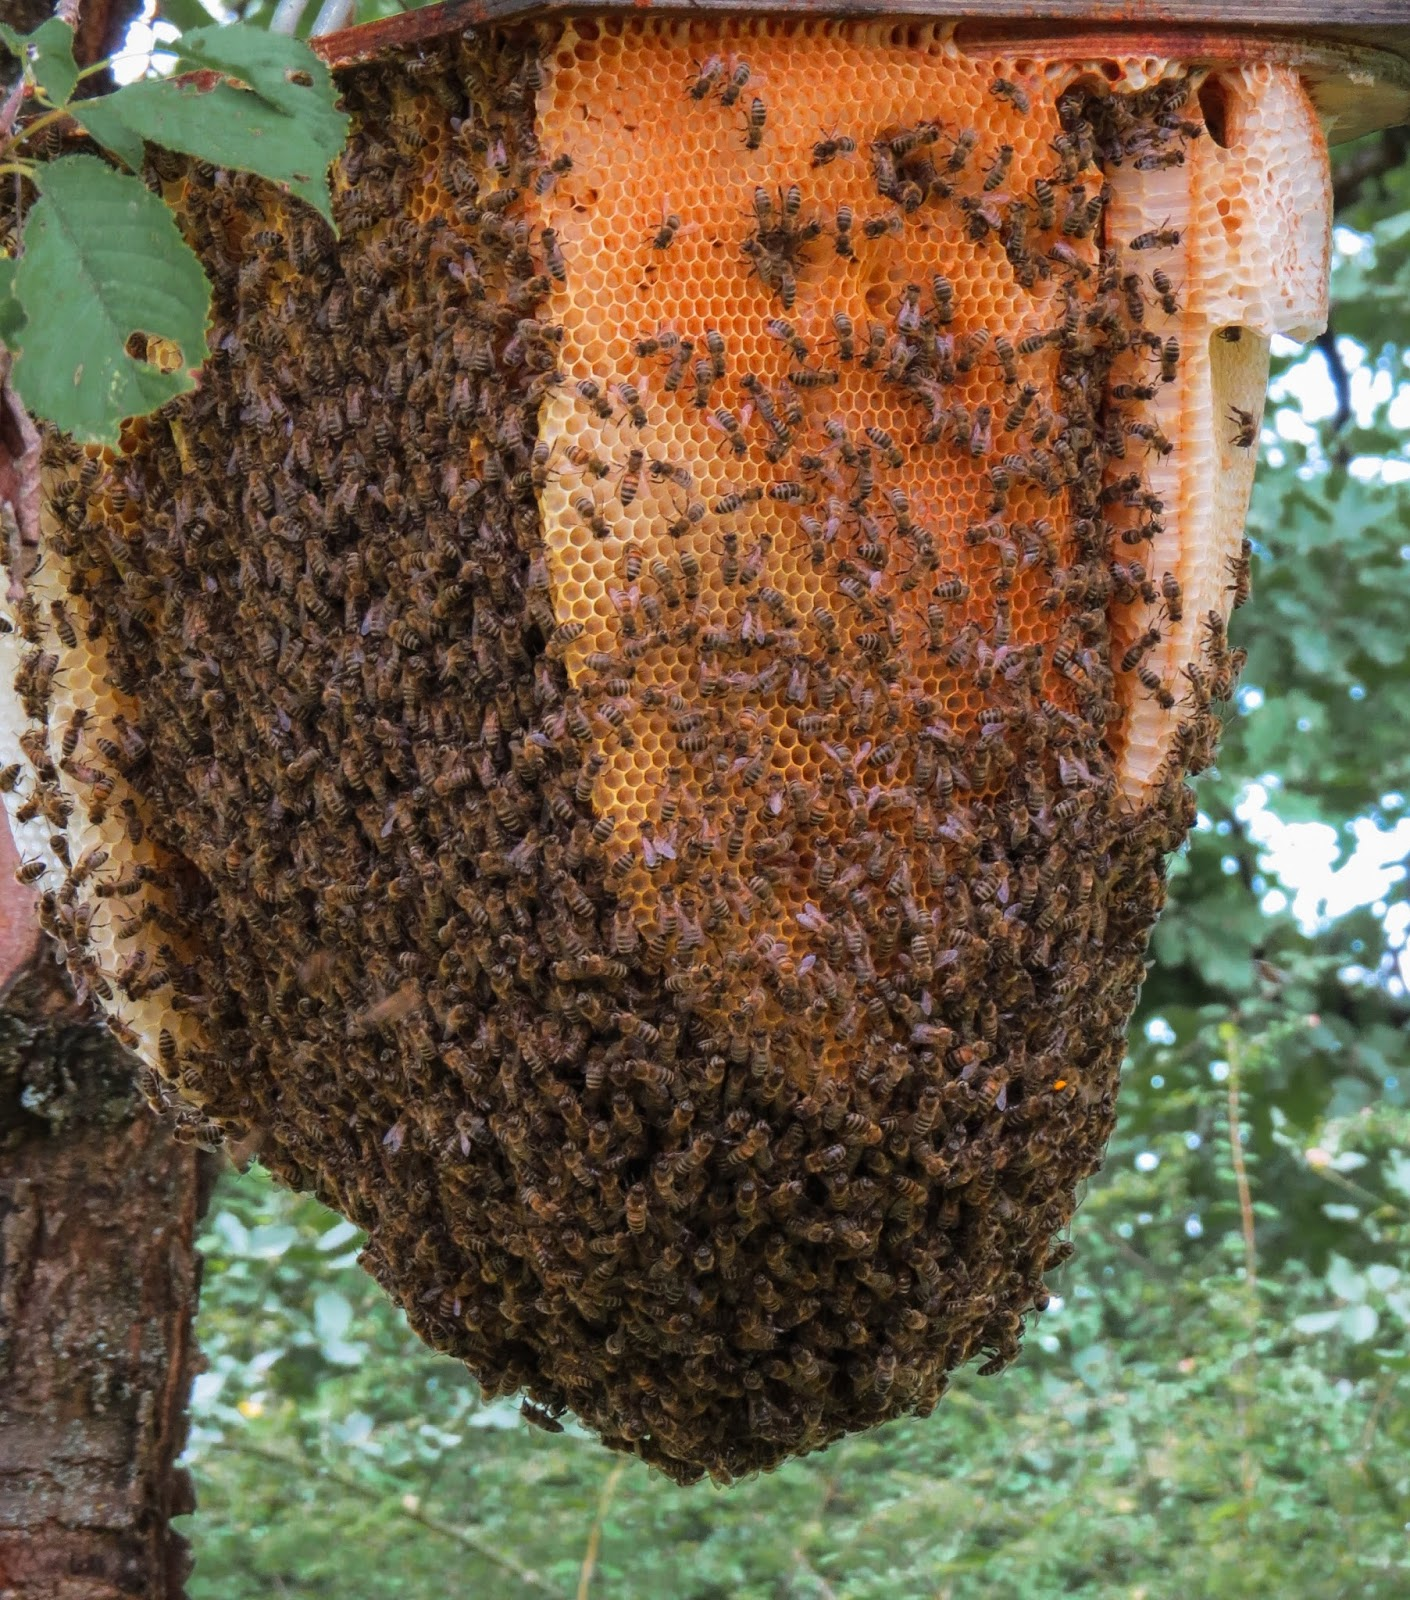 Picture of a beehive.